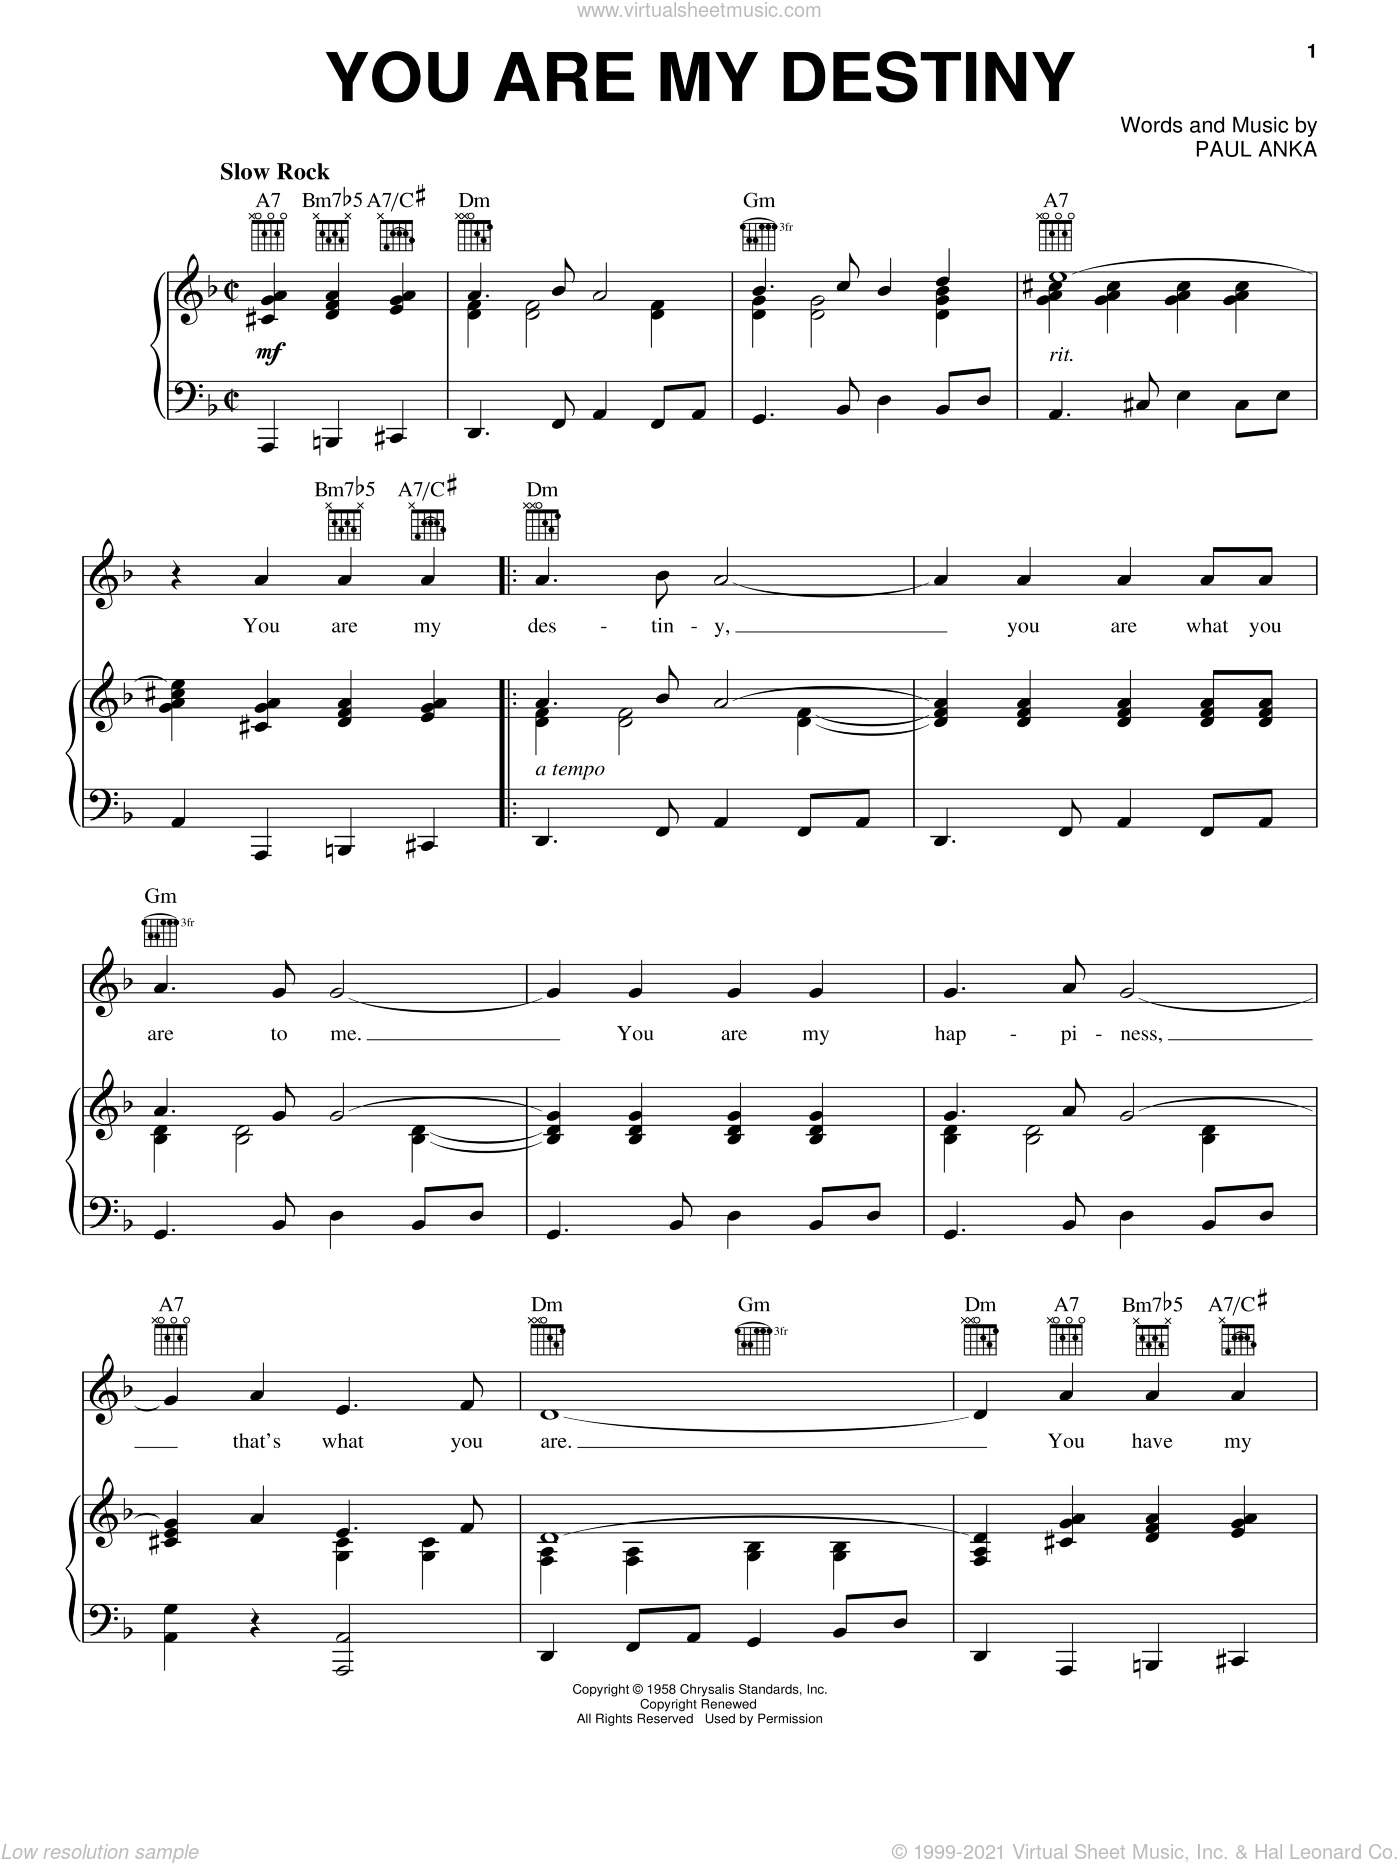 You Are My Destiny sheet music for voice, piano or guitar by Paul Anka